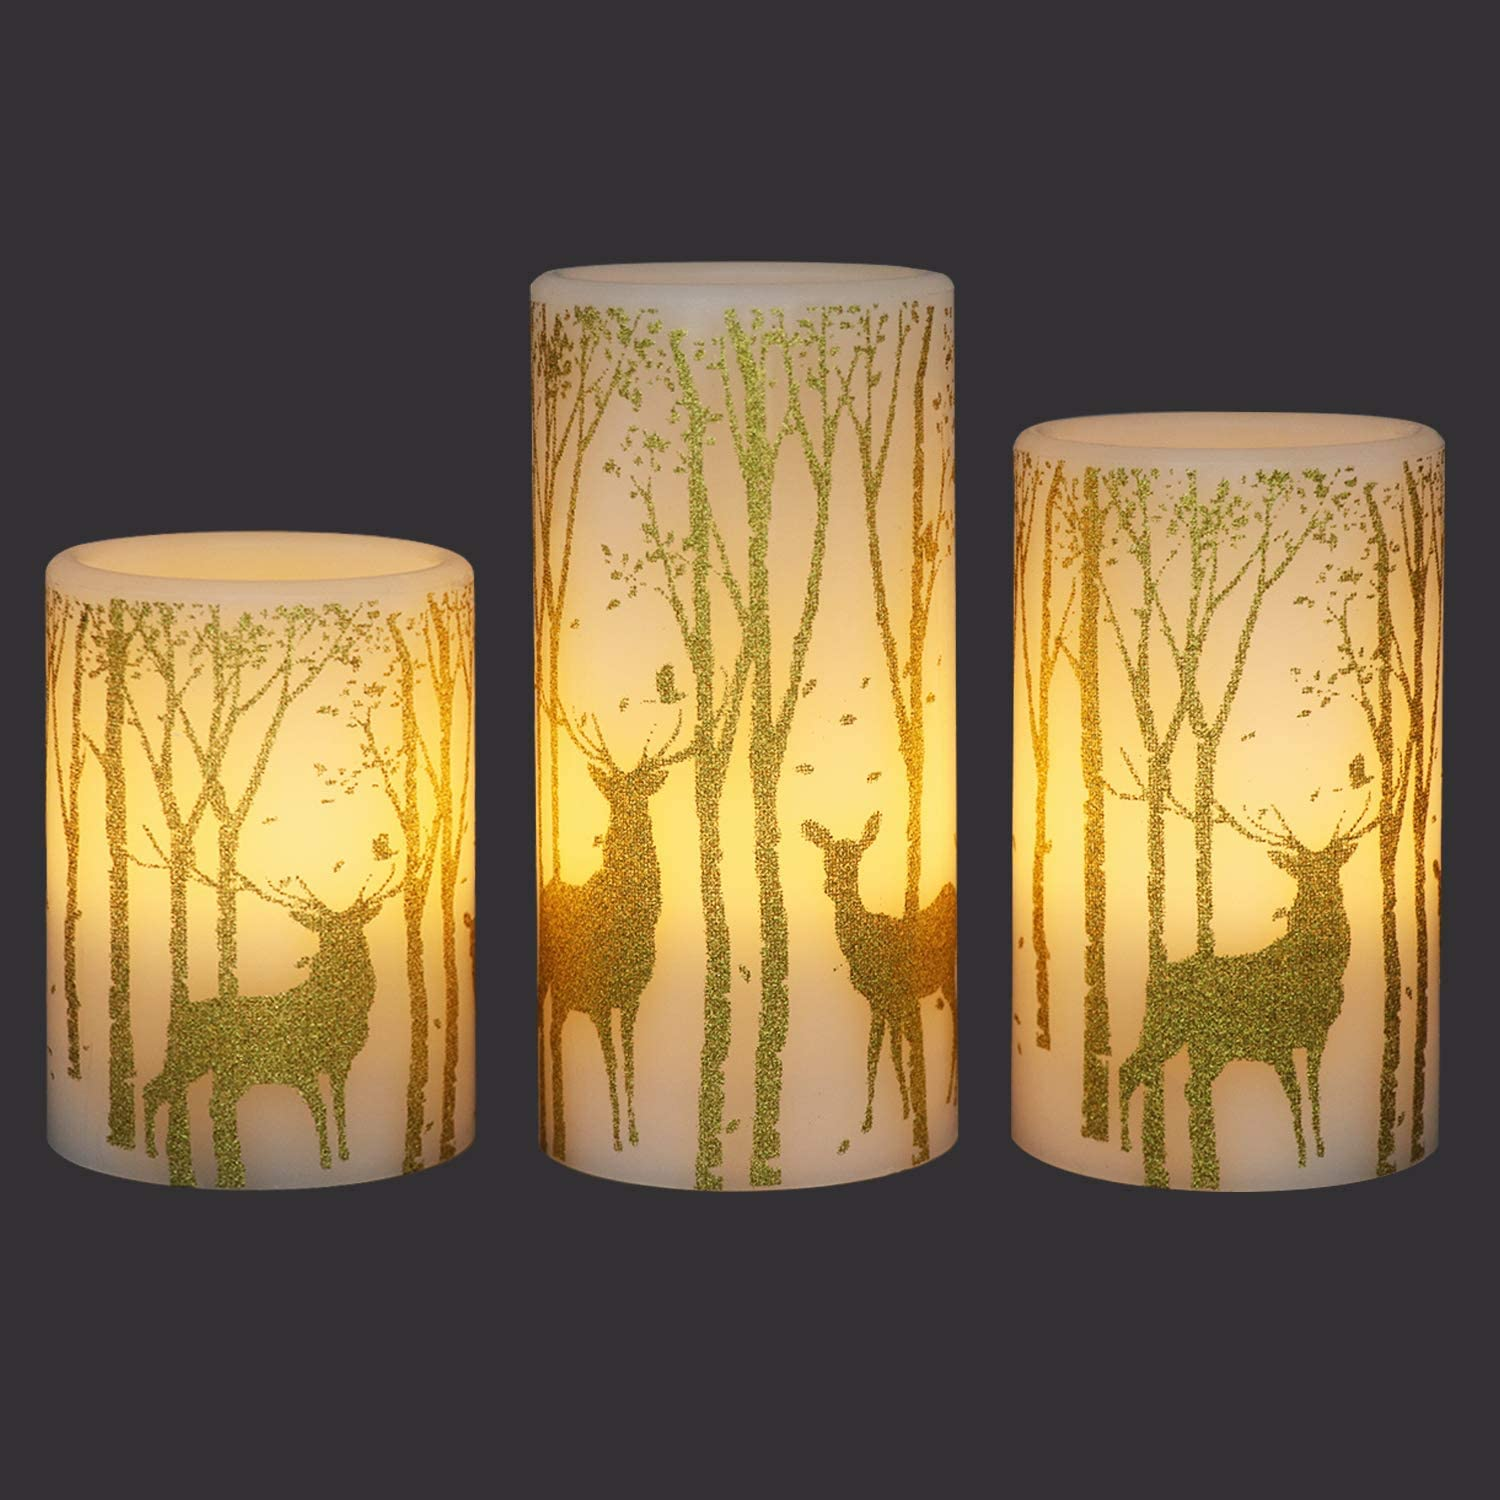 GenSwin Flickering Flameless Candles Battery Operated with 6 Hours Timer, Real Wax Led Pillar Candles Deer Decal Warm Light, Pack of 3 Christmas Home Decor